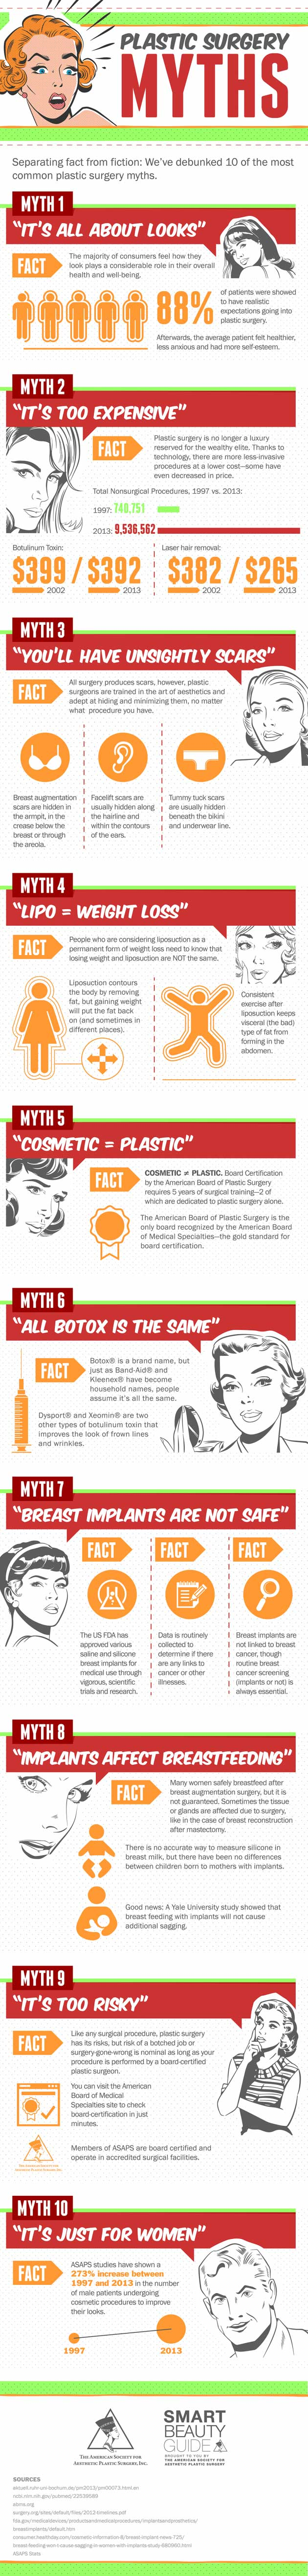 infographic about Top Plastic Surgery Myths, Fact vs. Fiction